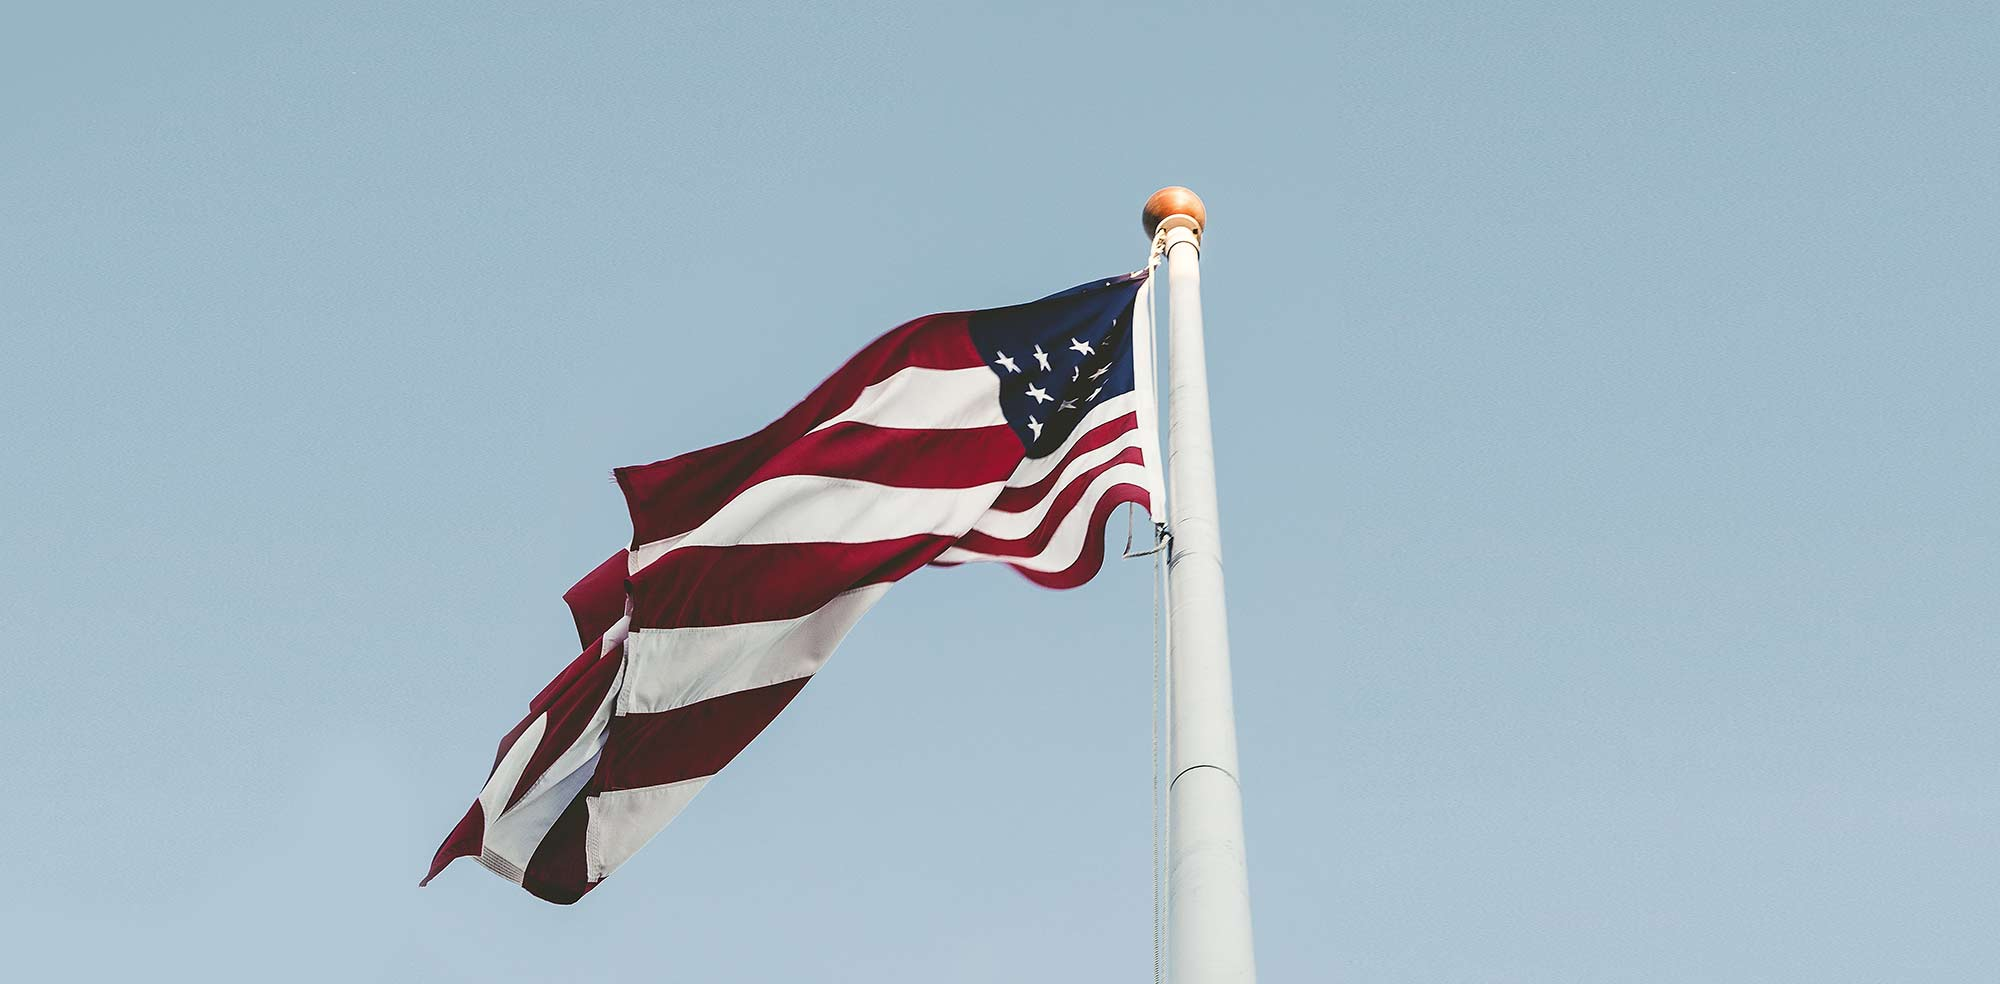 Save Dana Point Flag pole photo by unsplash